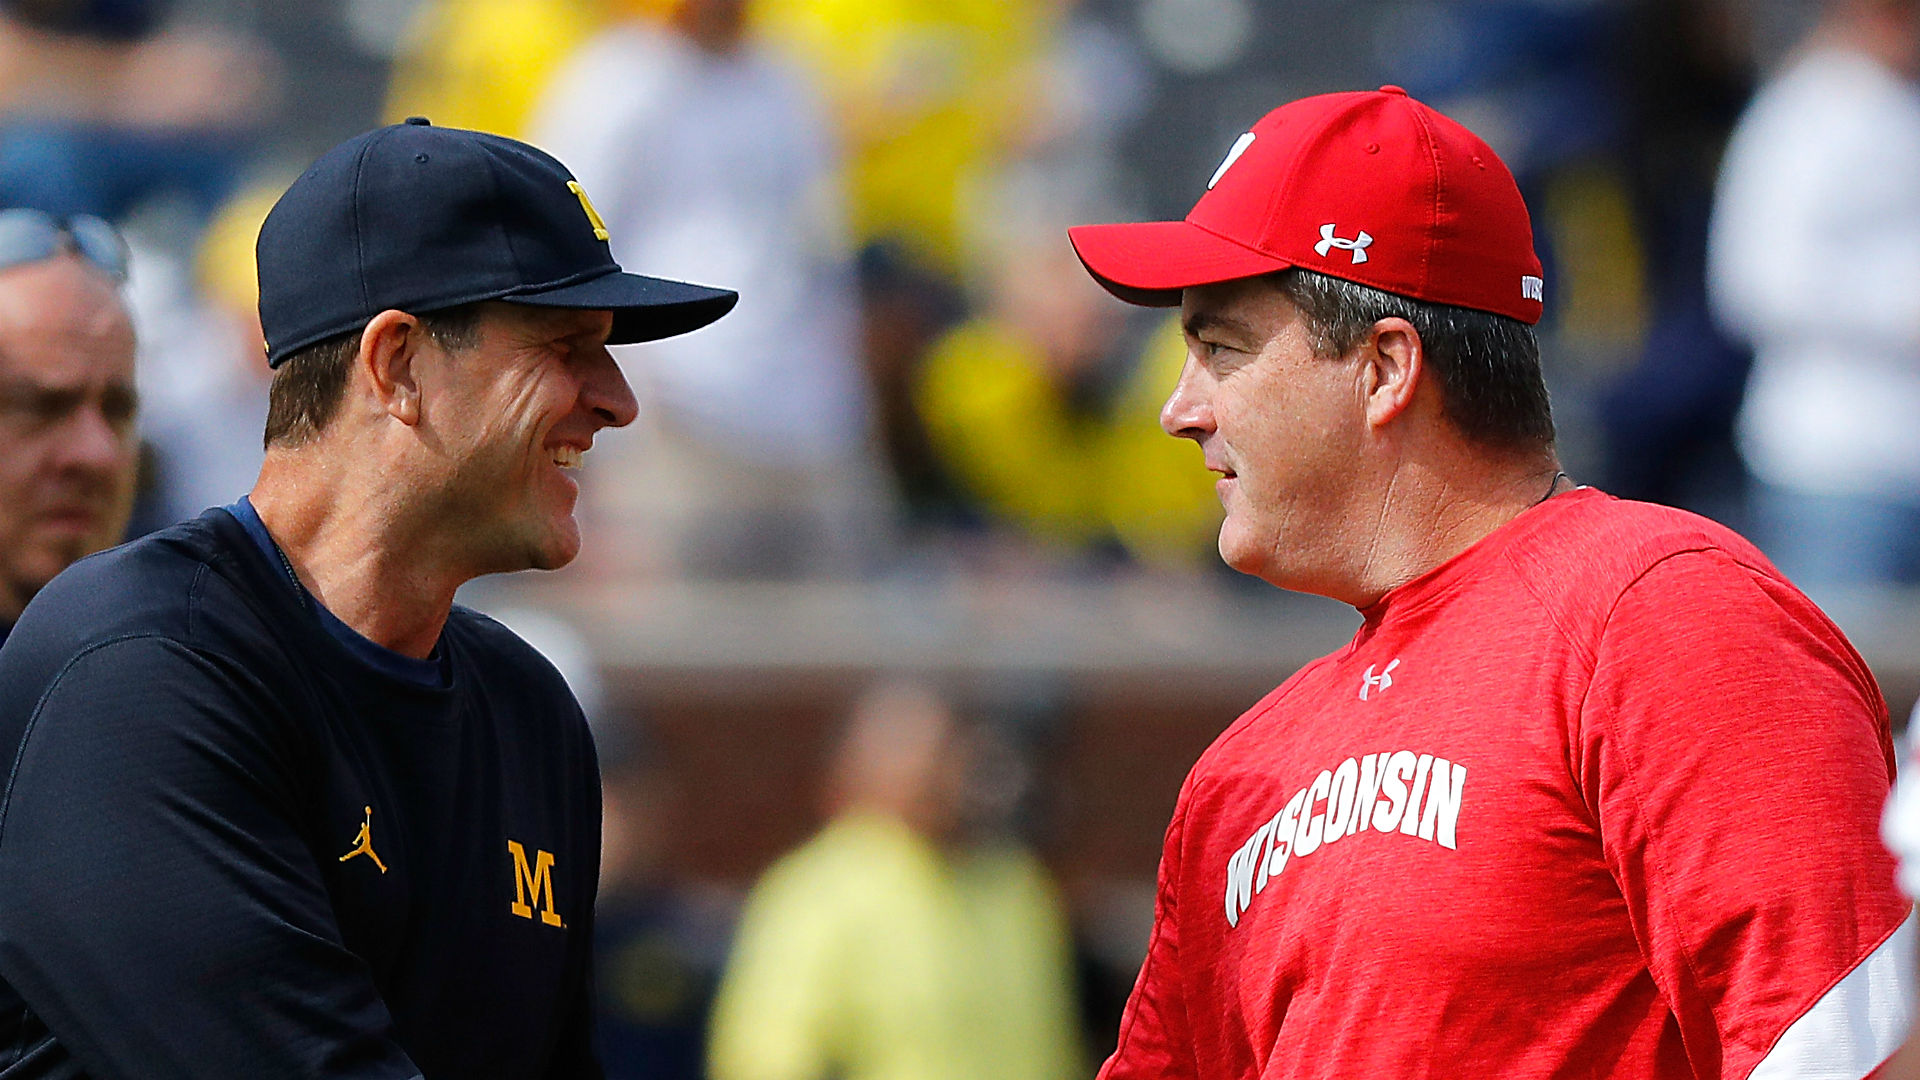 For Michigan-Wisconsin to matter beyond Big Ten, winner must actually challenge for Playoff